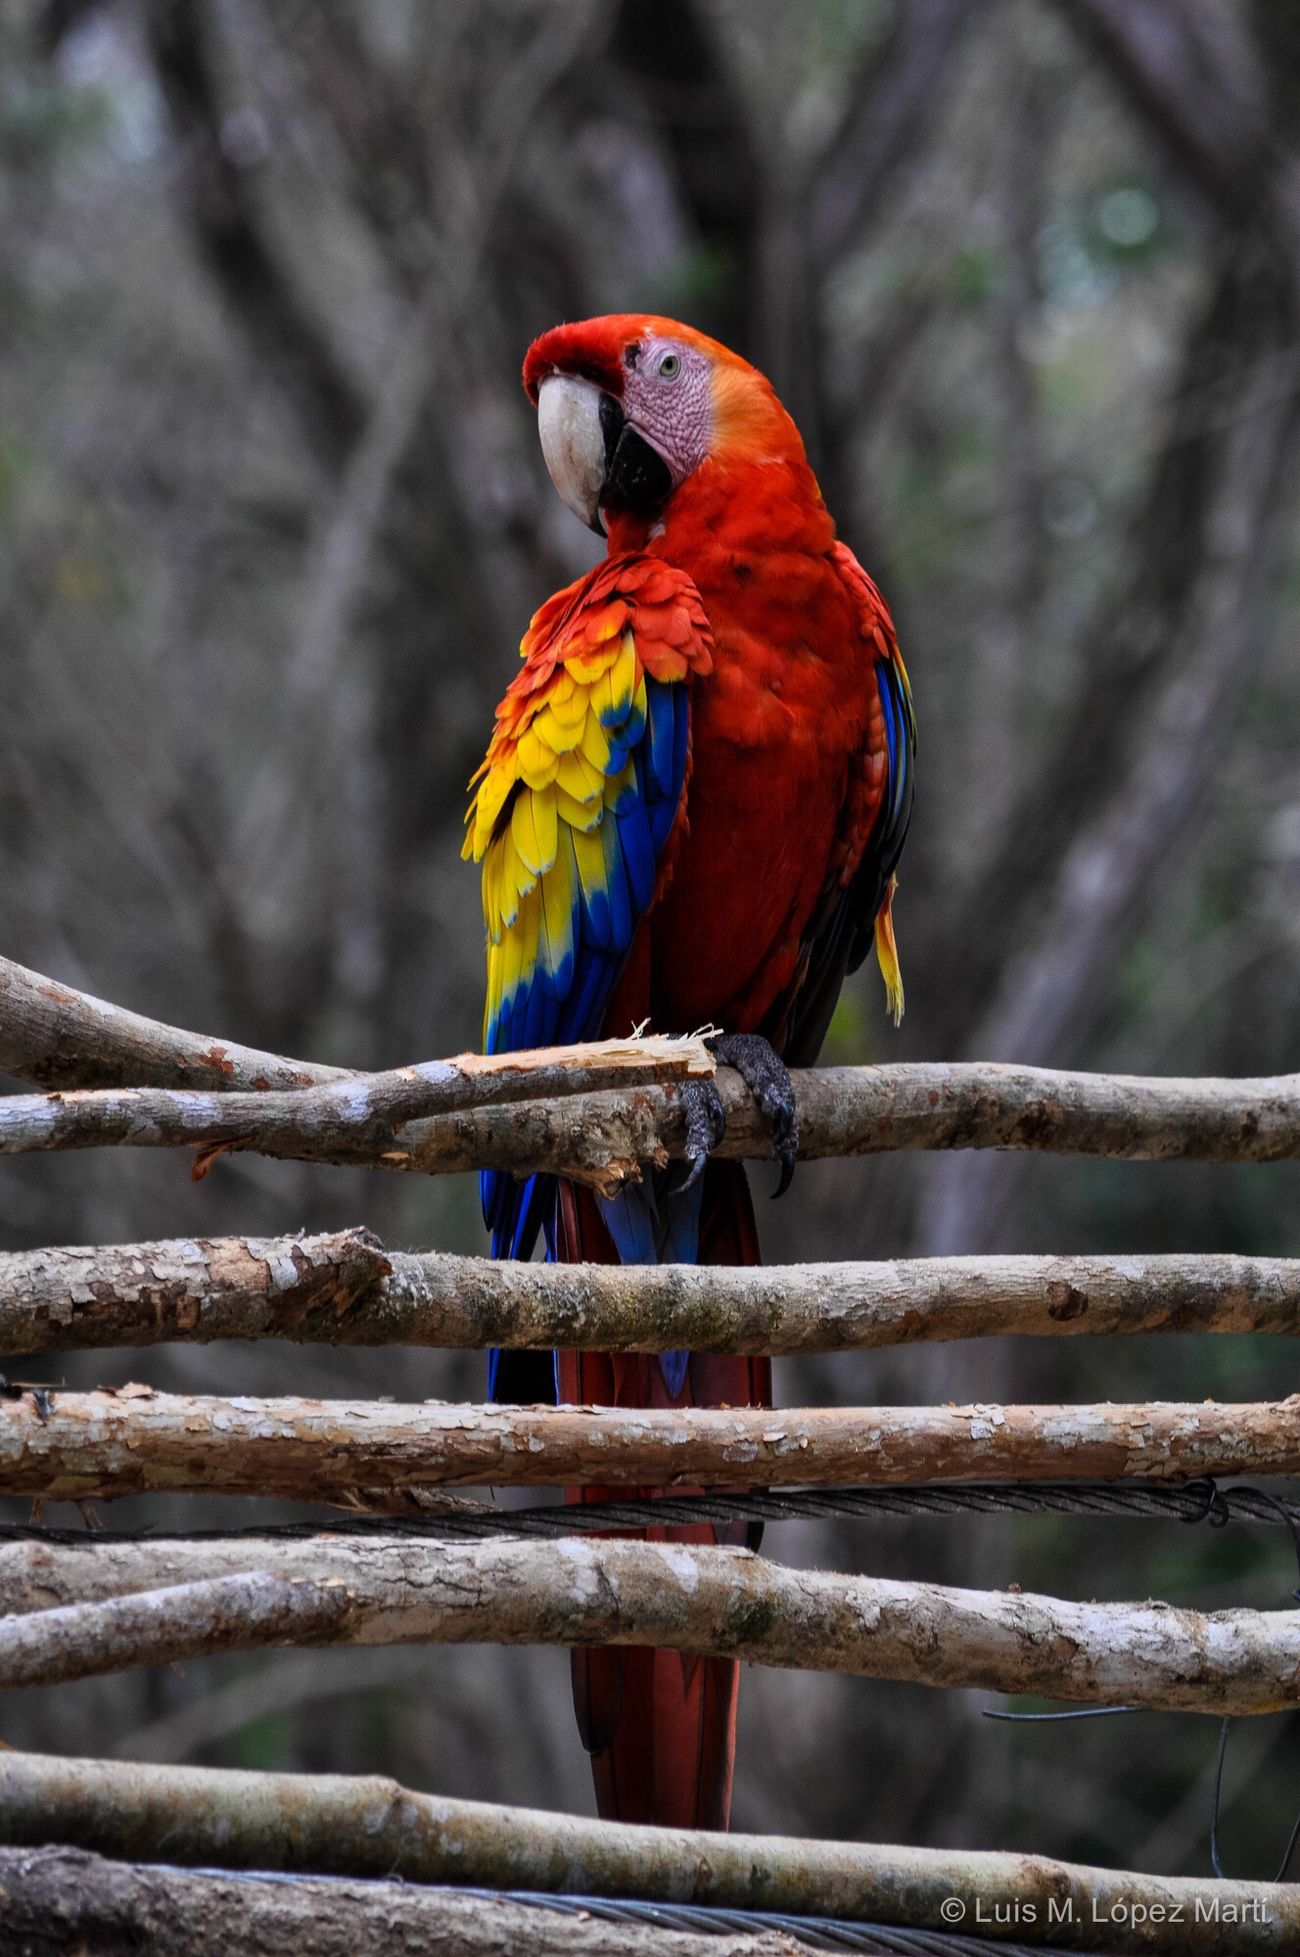 Copán Ruinas Honduras Bird Animal Themes Animals In The Wild Parrot Nature Beauty In Nature Animal Wildlife Light And Shadow Nature Nature Photography Colors Colorful Colour Of Life Colours Life Nikon Nikonphotography Travel Destinations Travel Photography Blue Yellow Red Birds